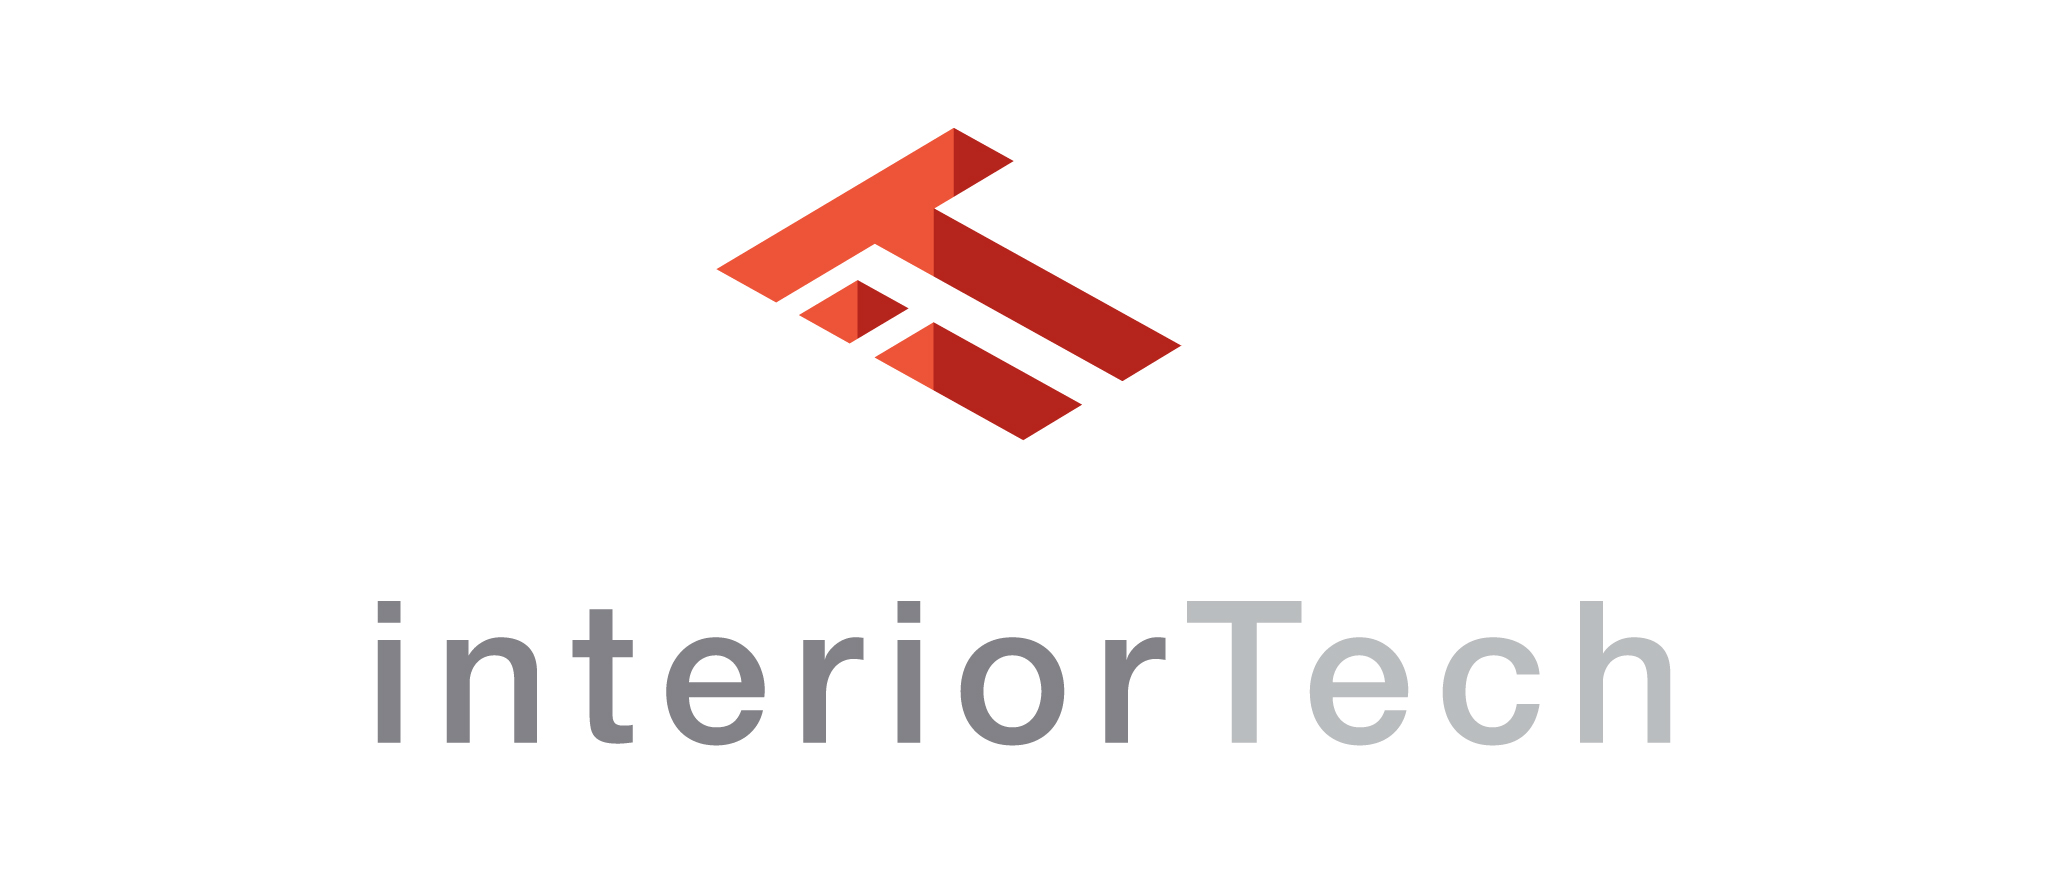 InteriorTech-Logo-Vertical.jpg - 94.34 Kb